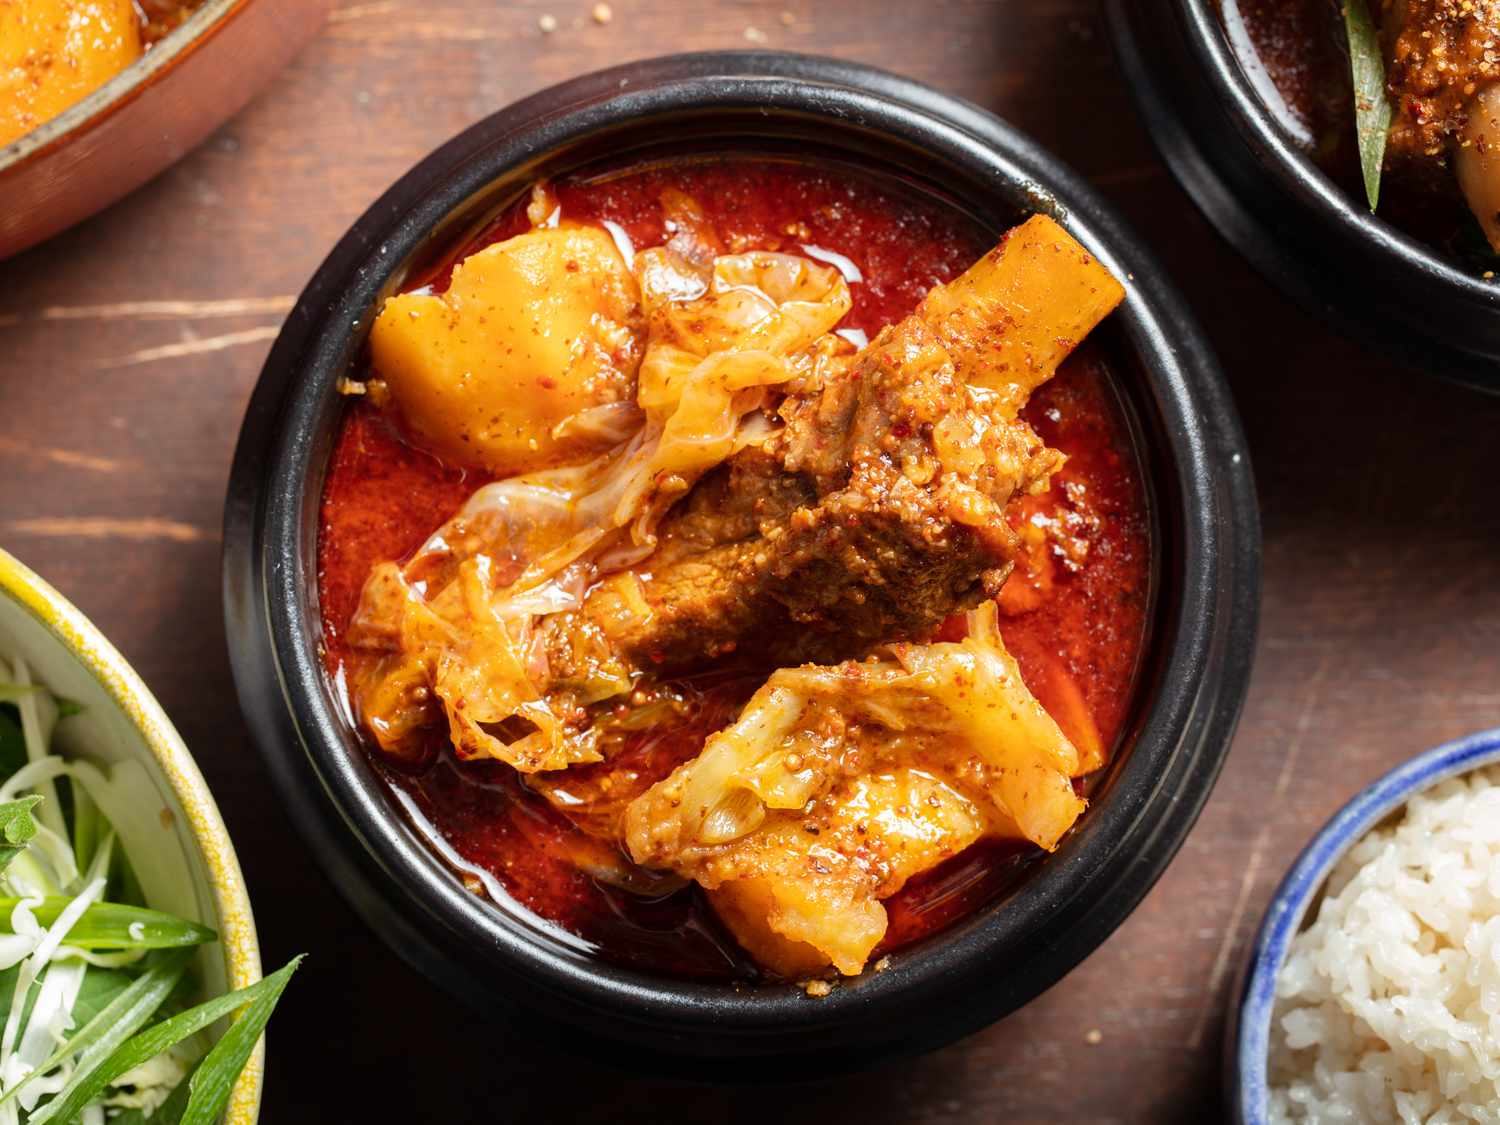 Bowl of gamja-tang with garnishes.